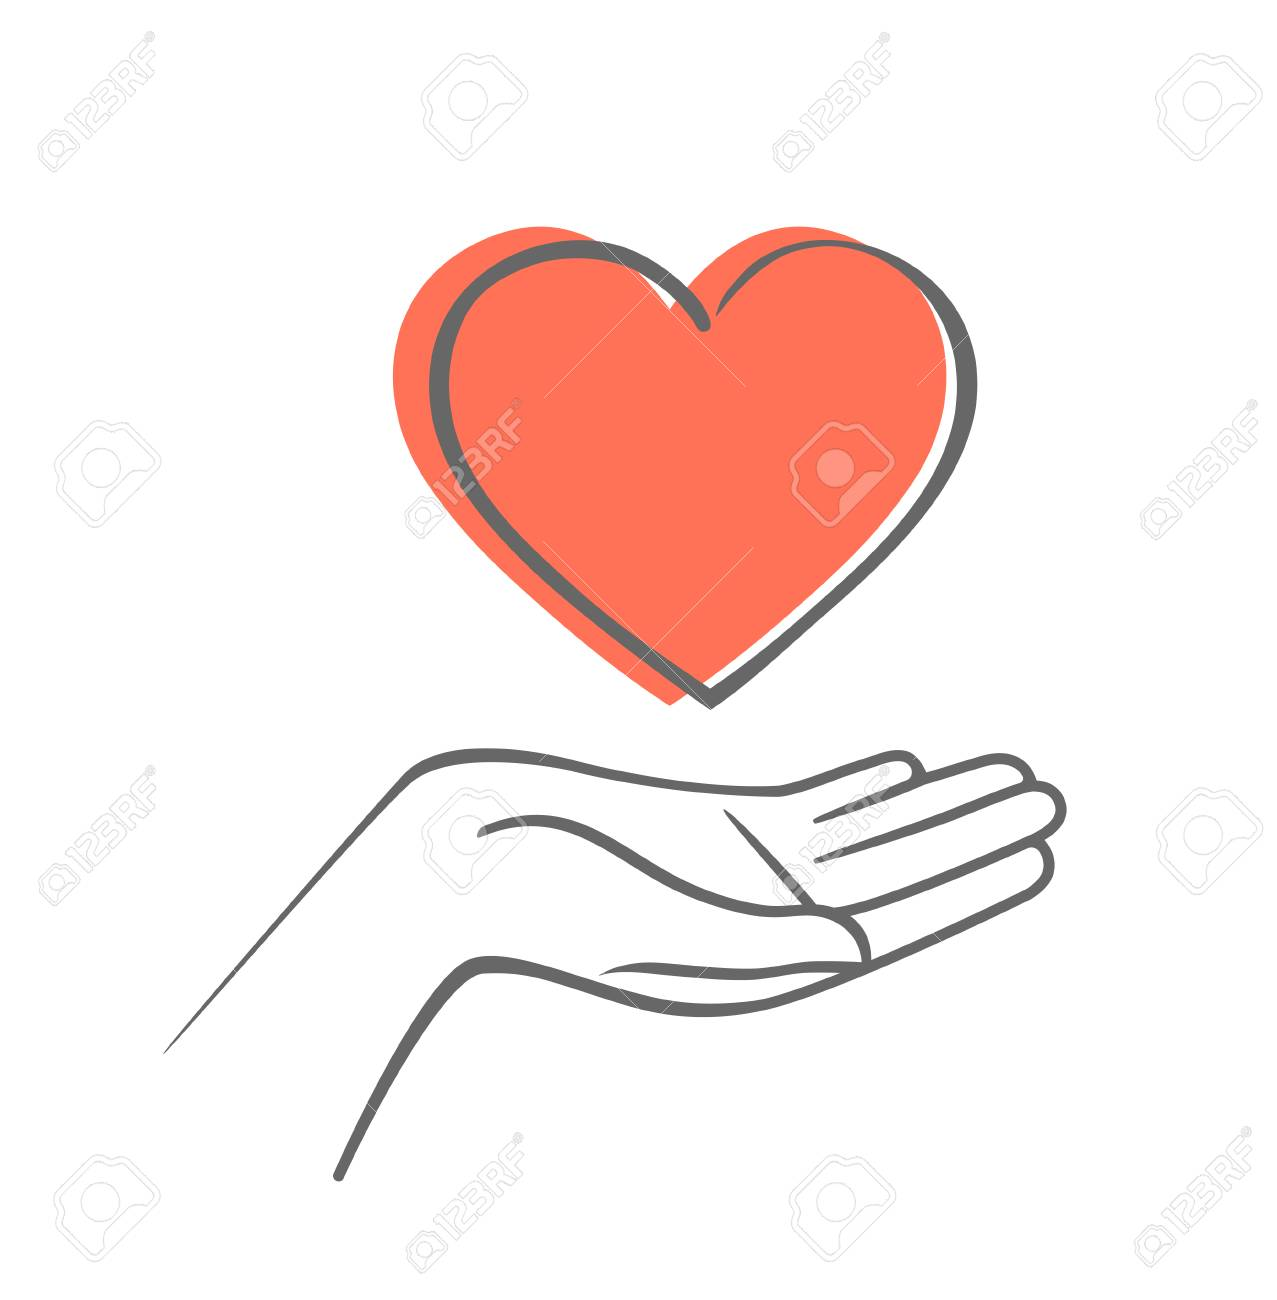 Hand Holding Heart Shape Hand Draw Vector Icon Royalty Free